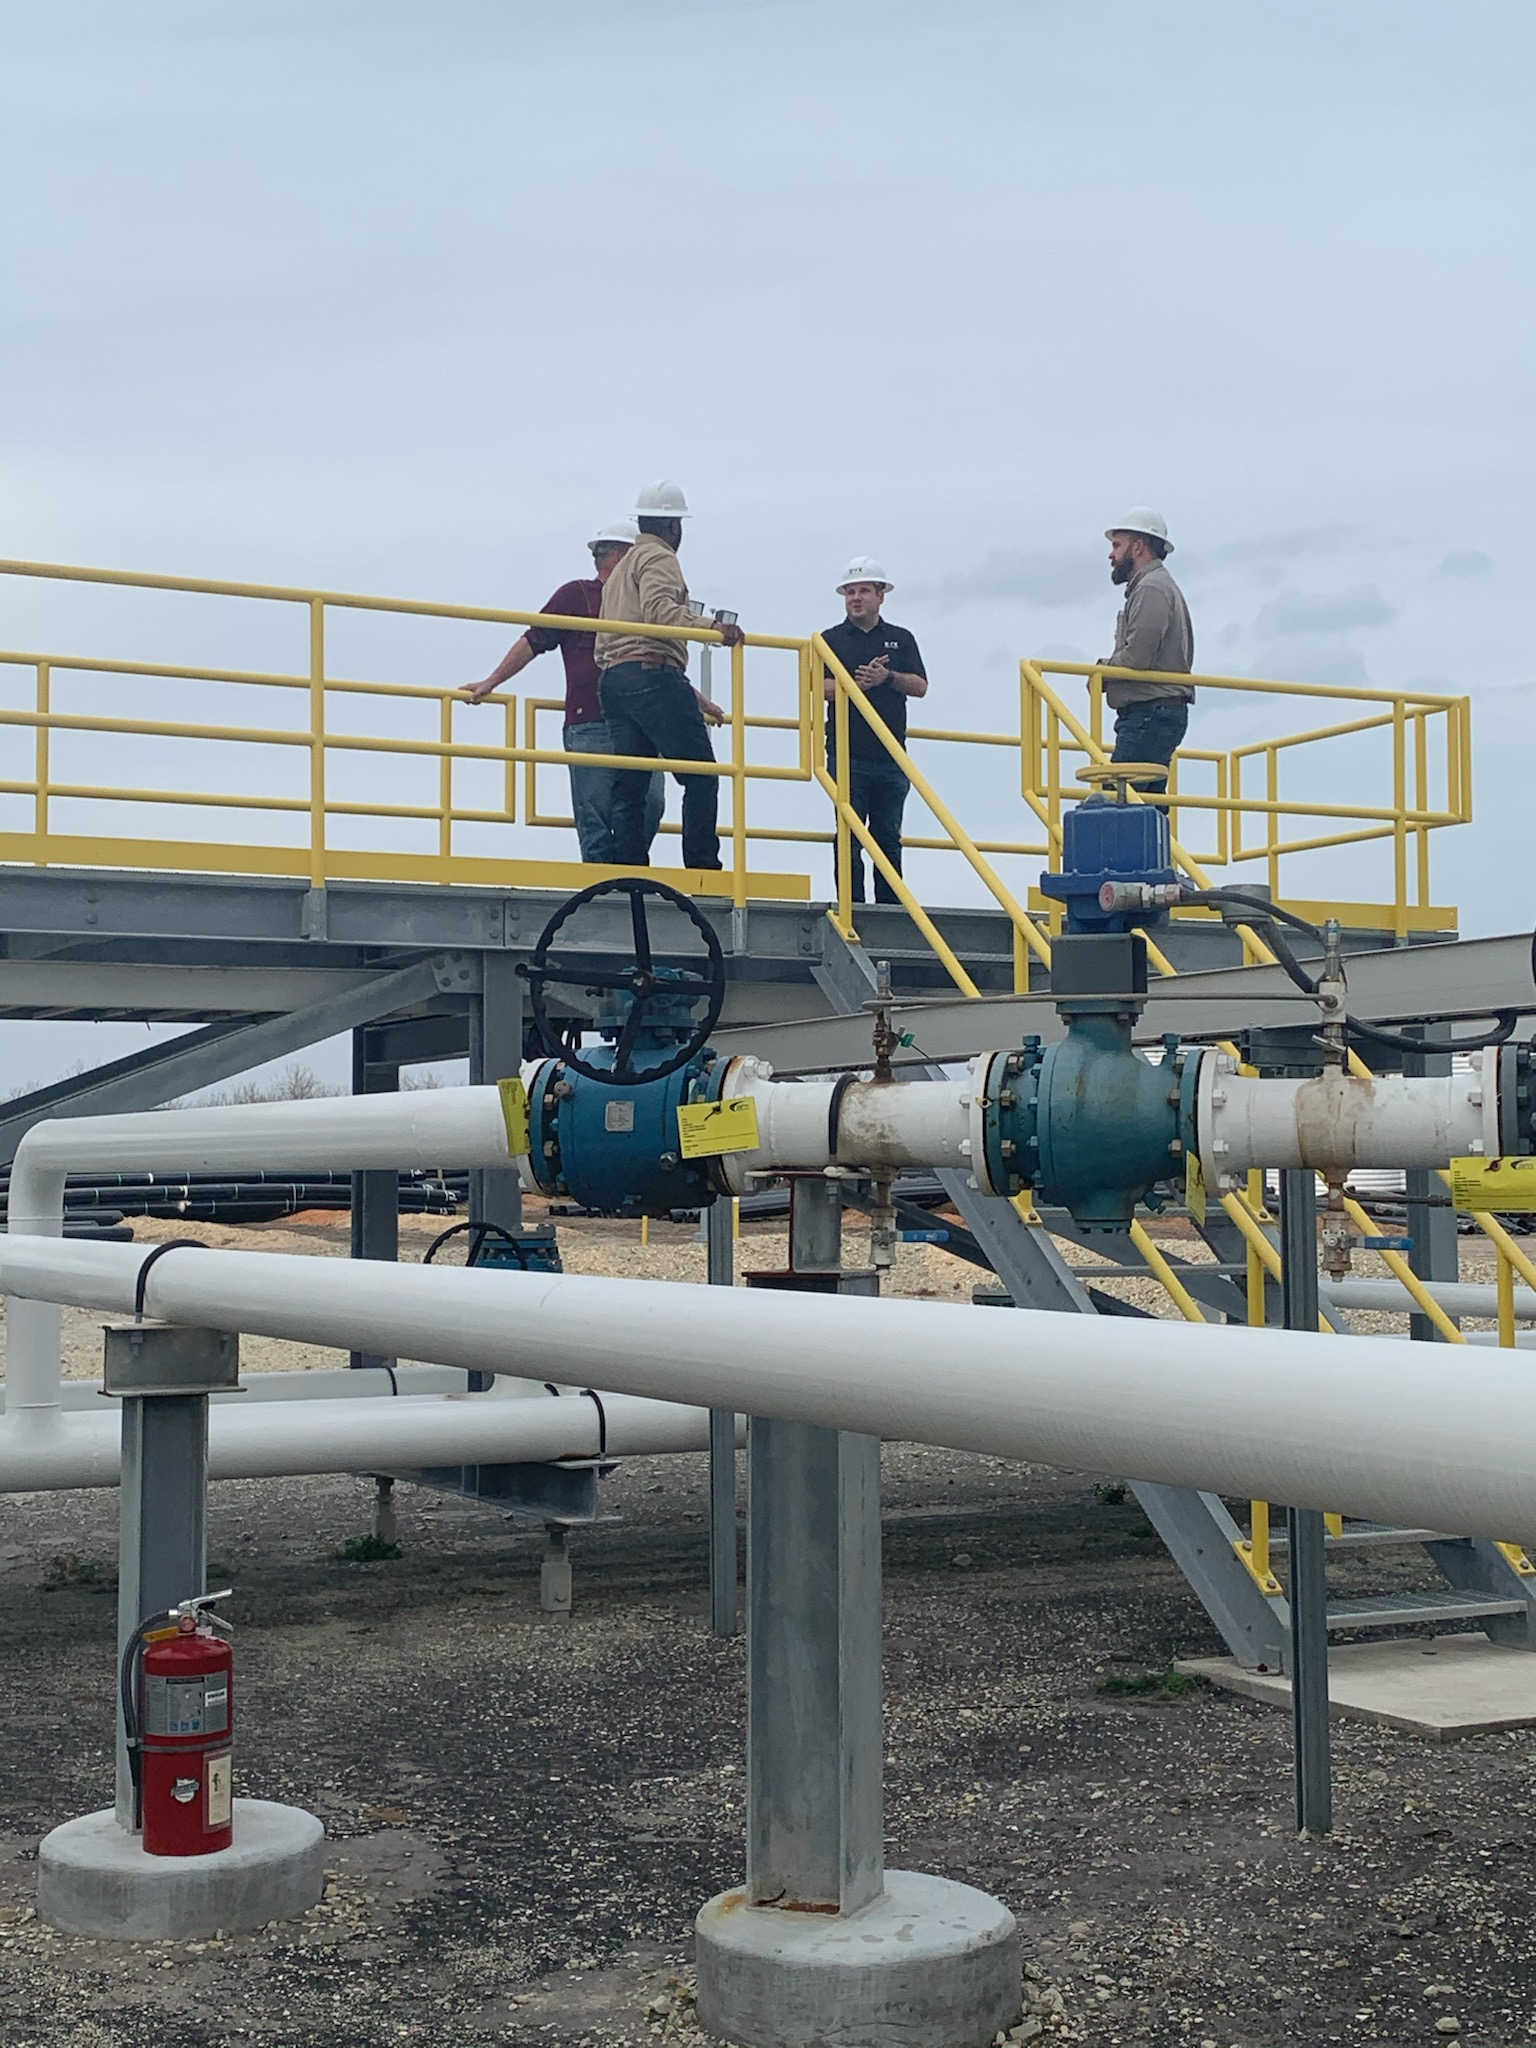 Four co-workers standing on a platform above a series of pipelines.